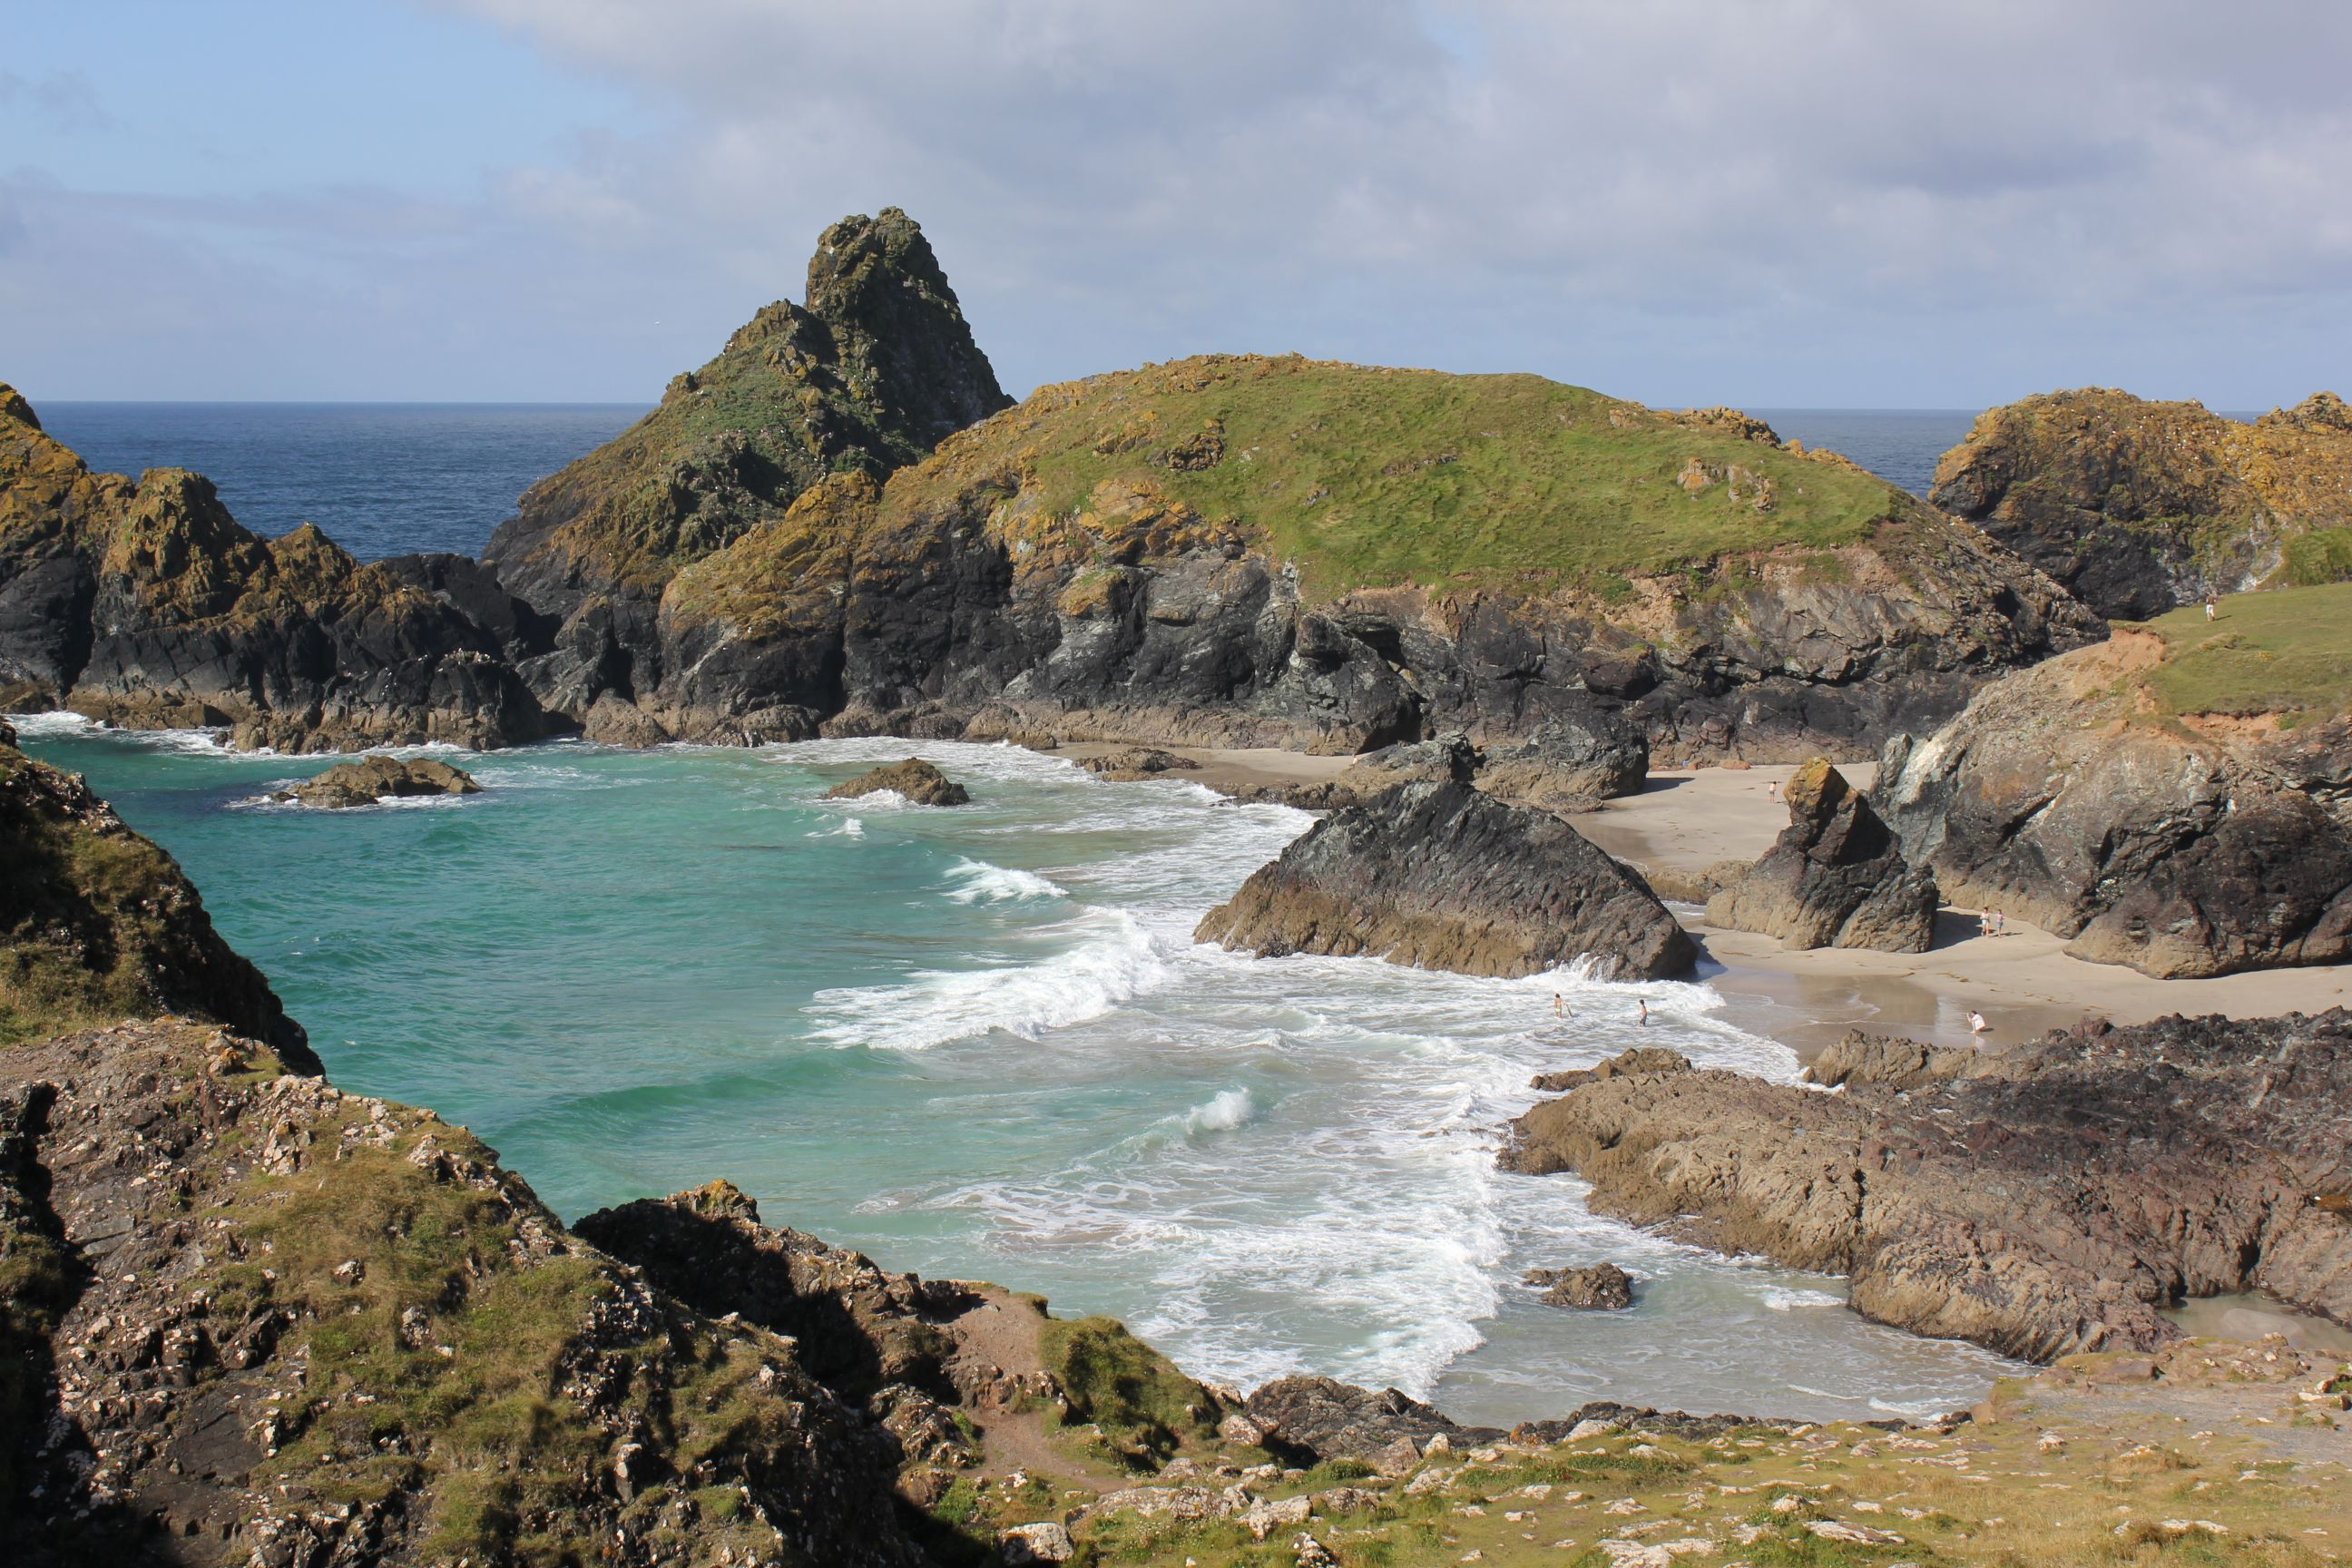 Holiday Cottage Kynance Cove Pictures To Pin On Pinterest